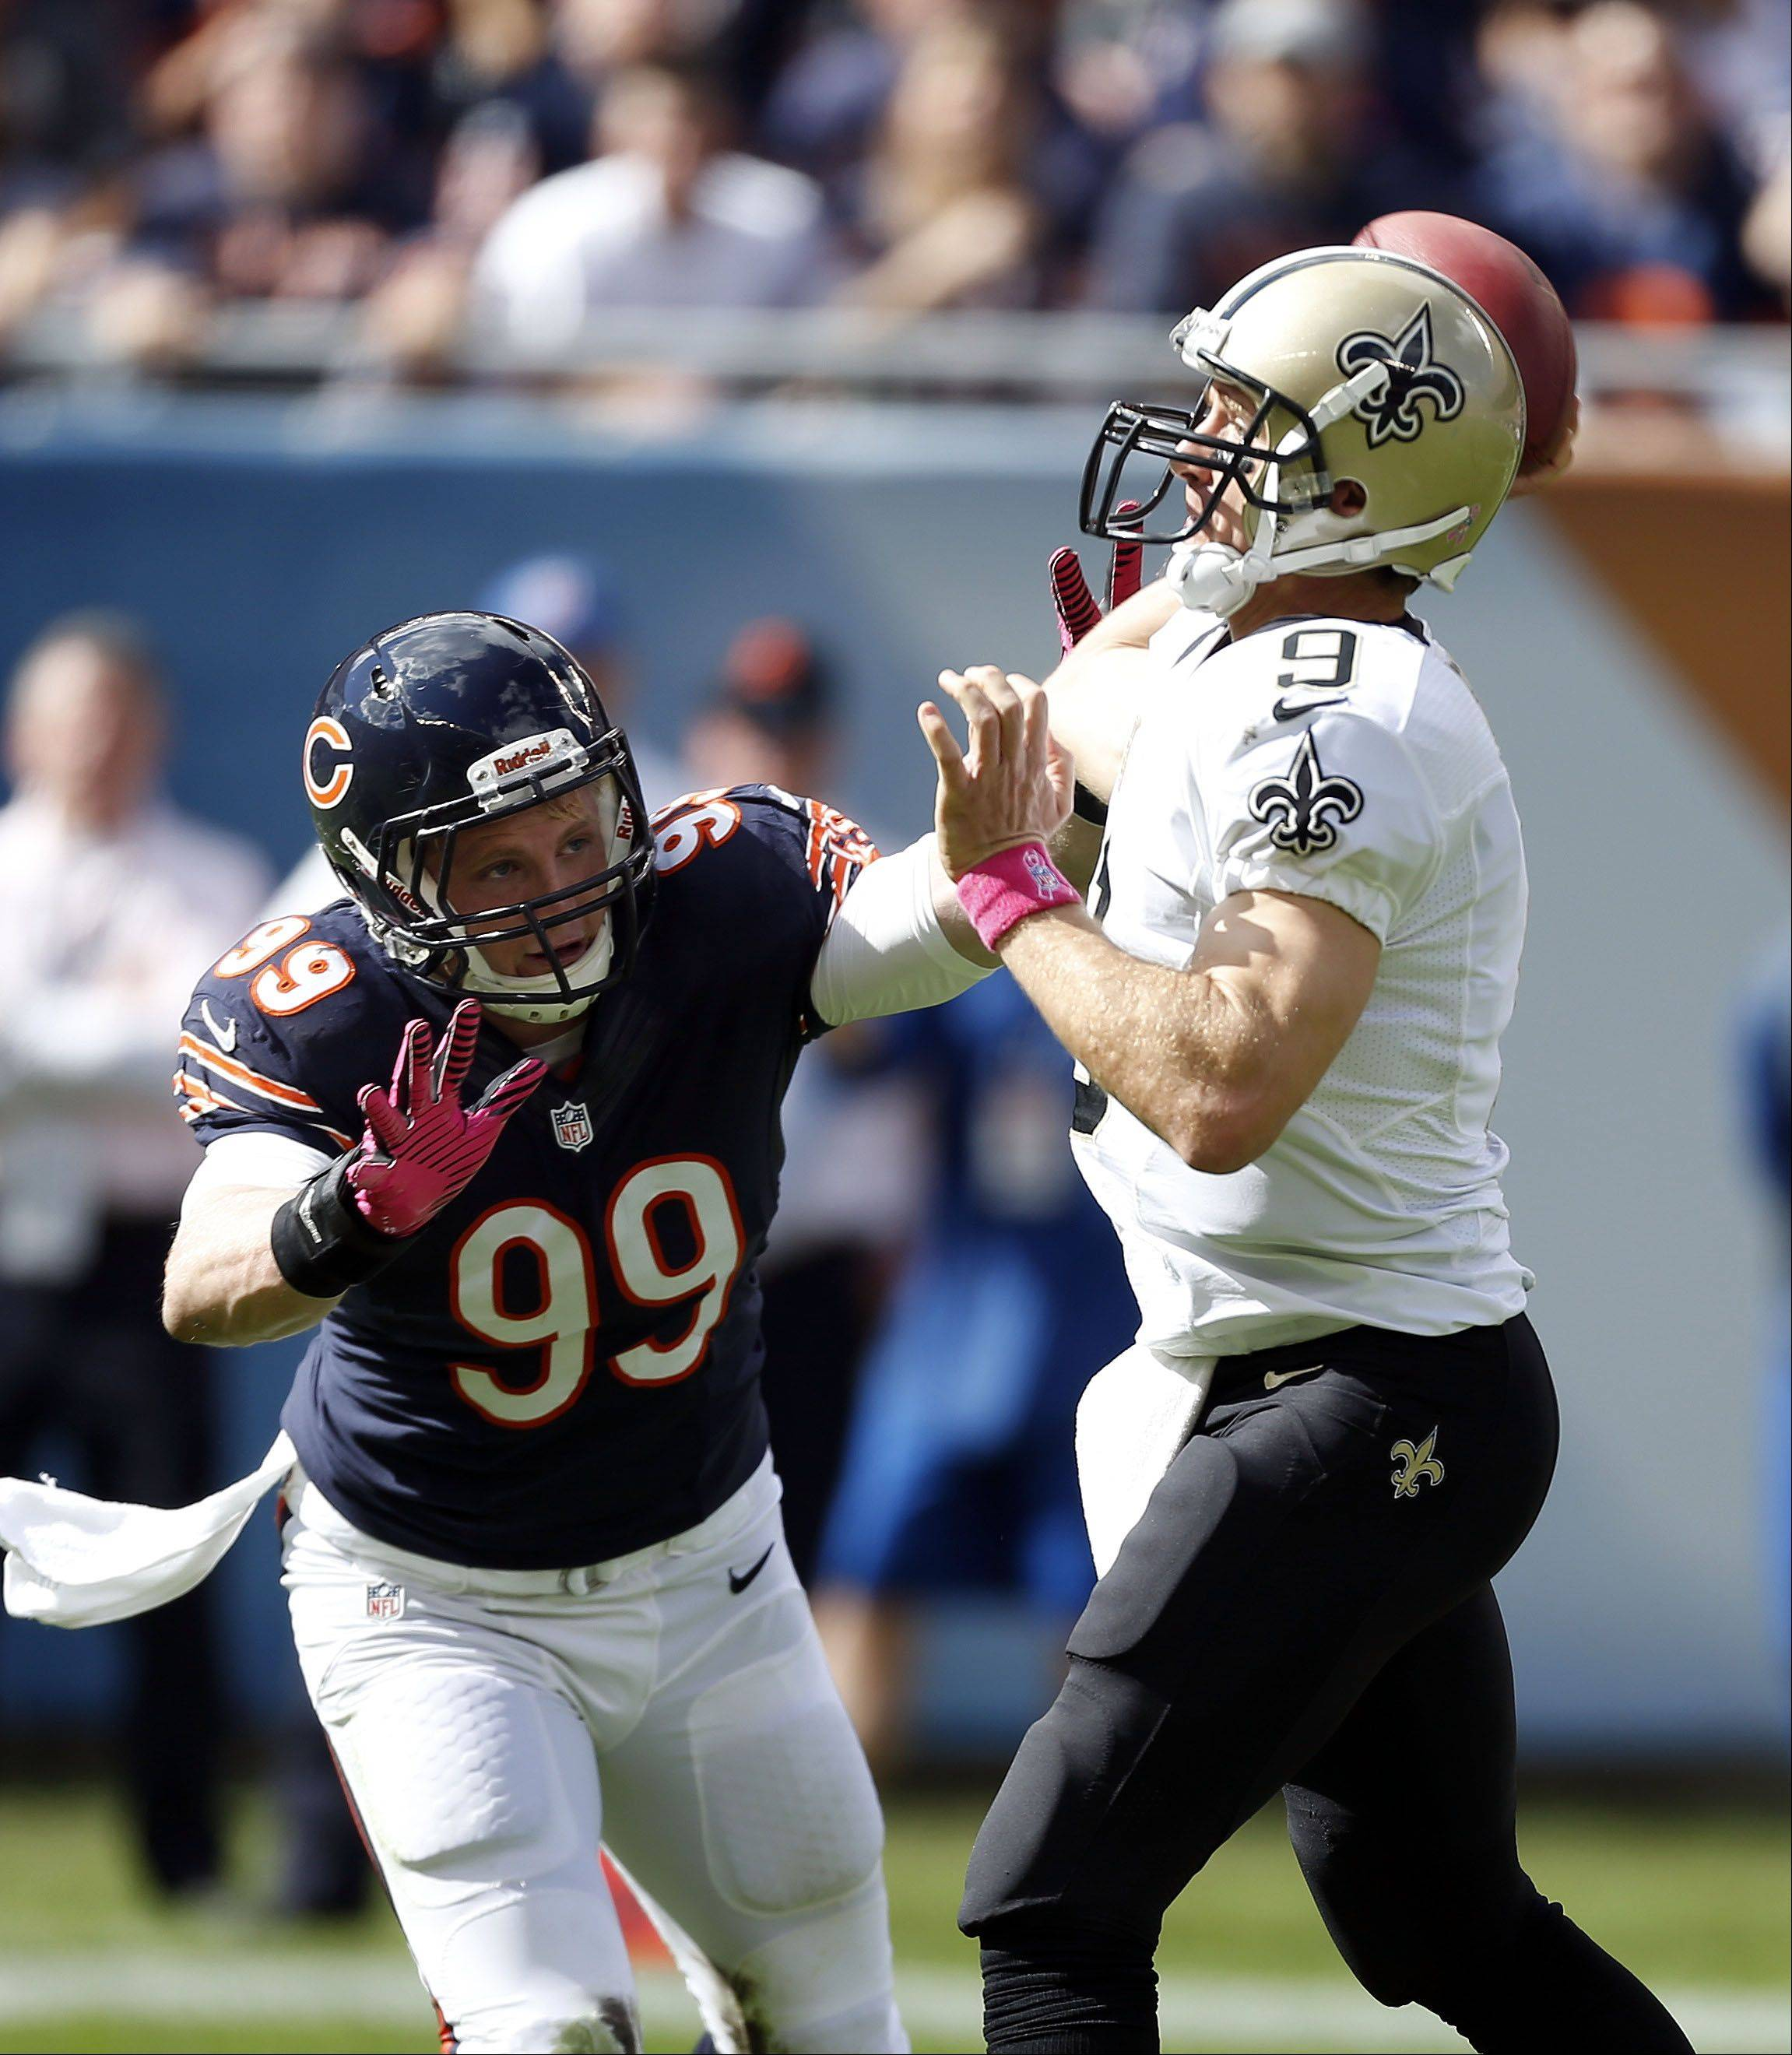 Bears defensive end Shea McClellin pressures Saints quarterback Drew Brees during the Bears' 26-18 loss at Soldier Field in October.